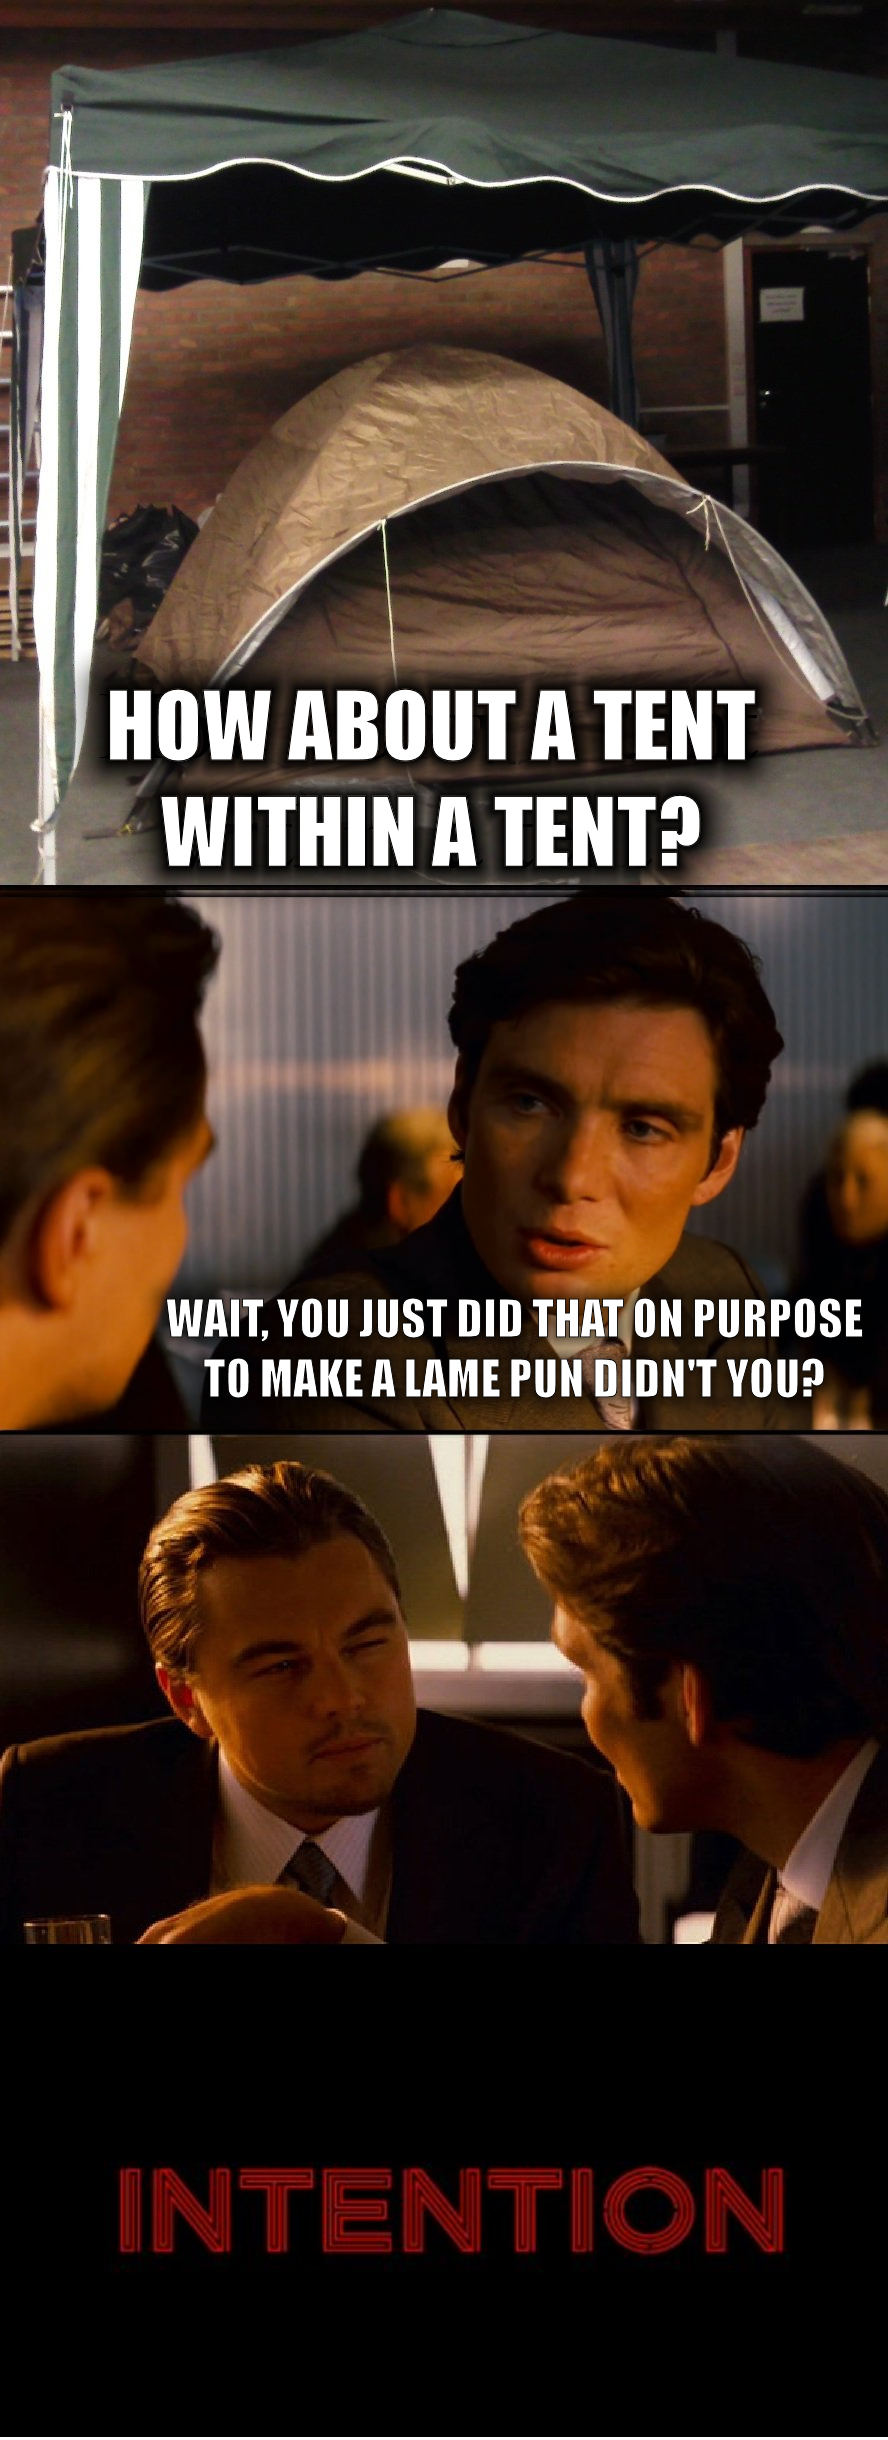 The Inception   Memes. hilarious cant stop laughing